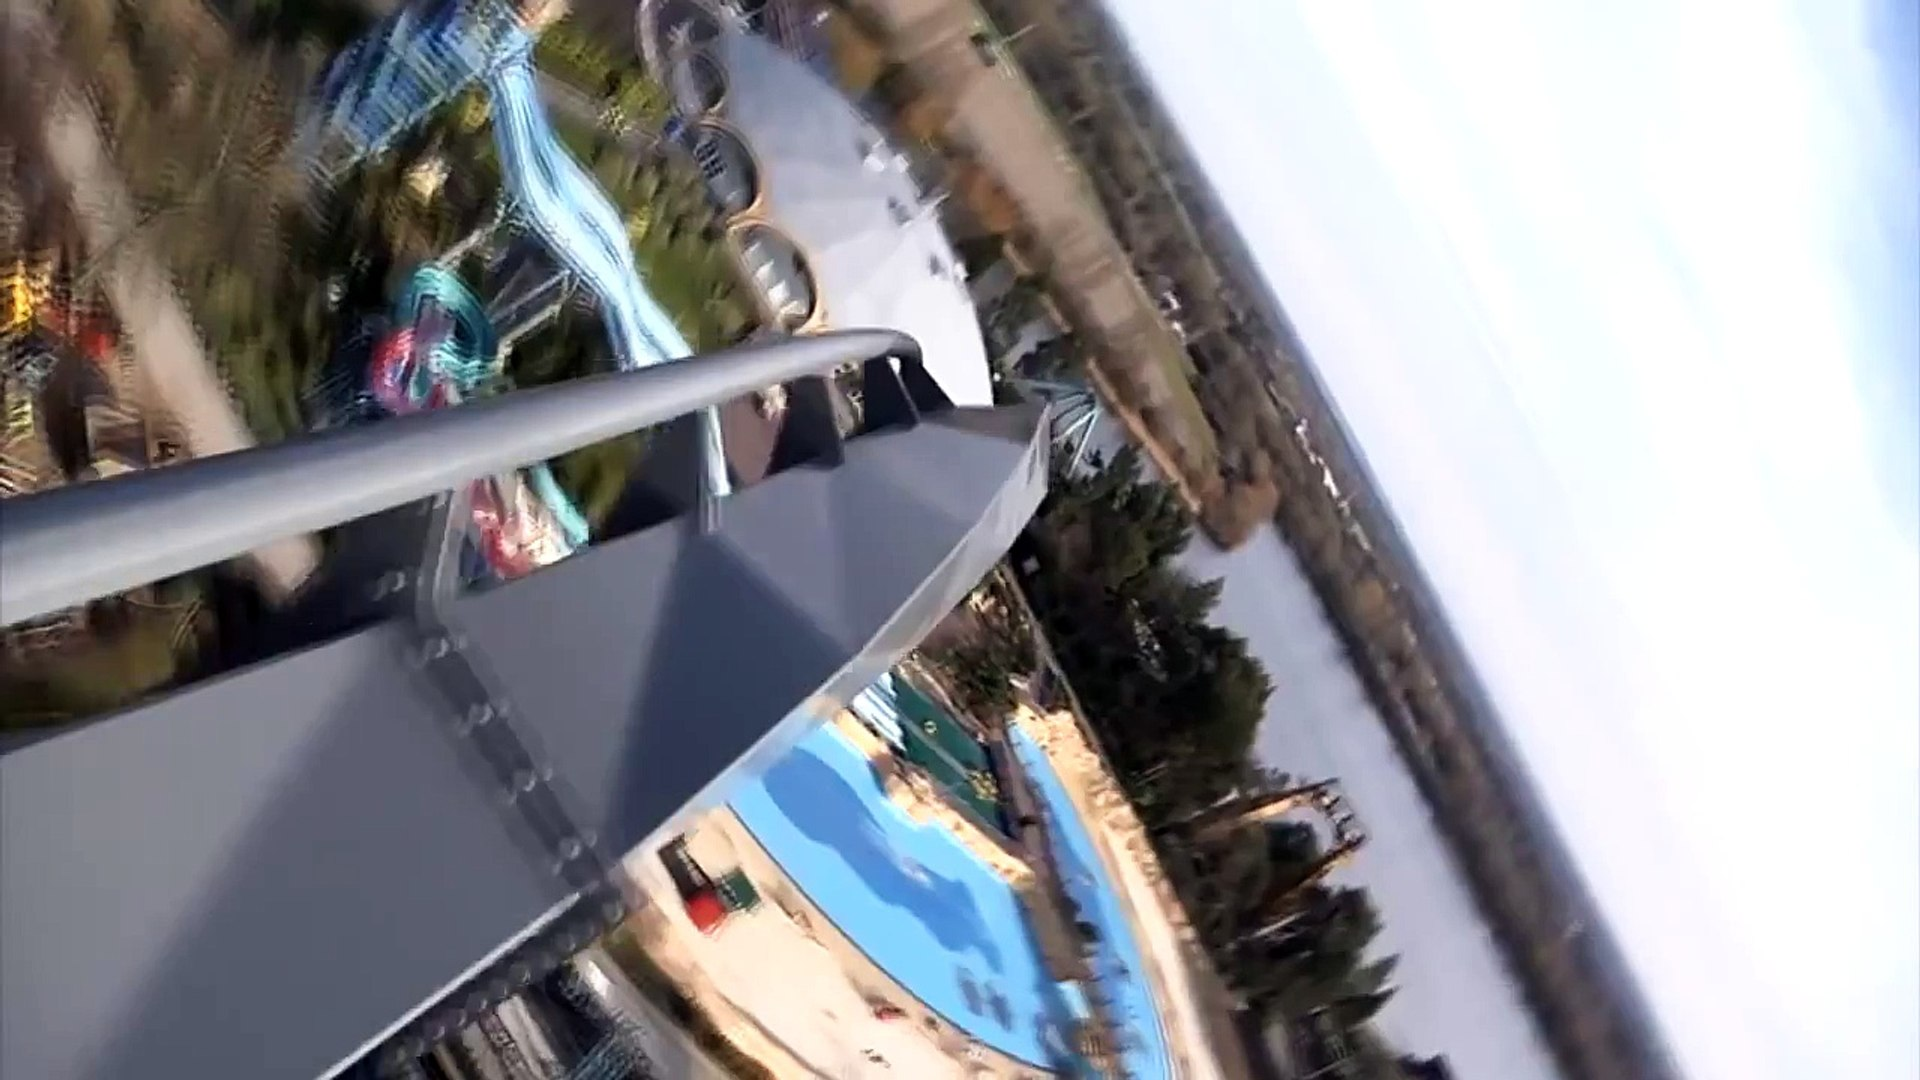 The Swarm POV of Thorpe Park Roller Coaster Front Seat View B&M Wing Rider London UK